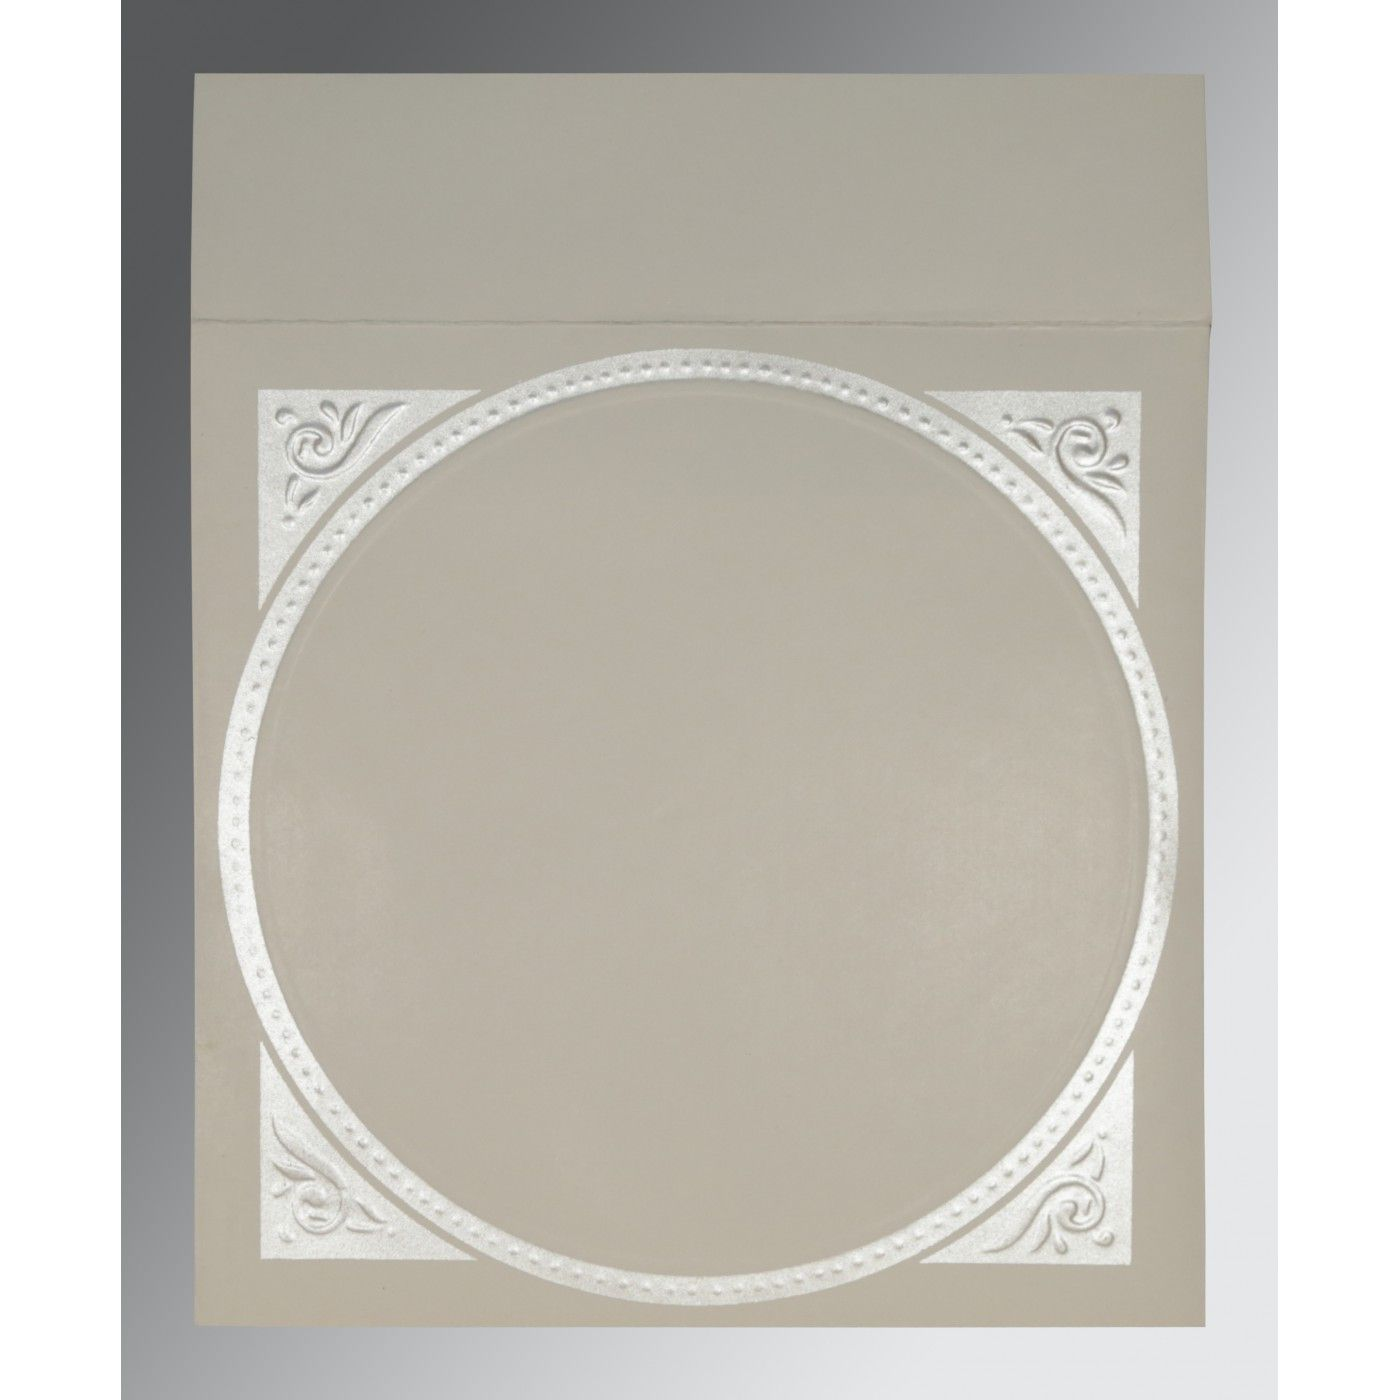 PALE SILVER MATTE EMBOSSED WEDDING CARD : CW-2015 - IndianWeddingCards